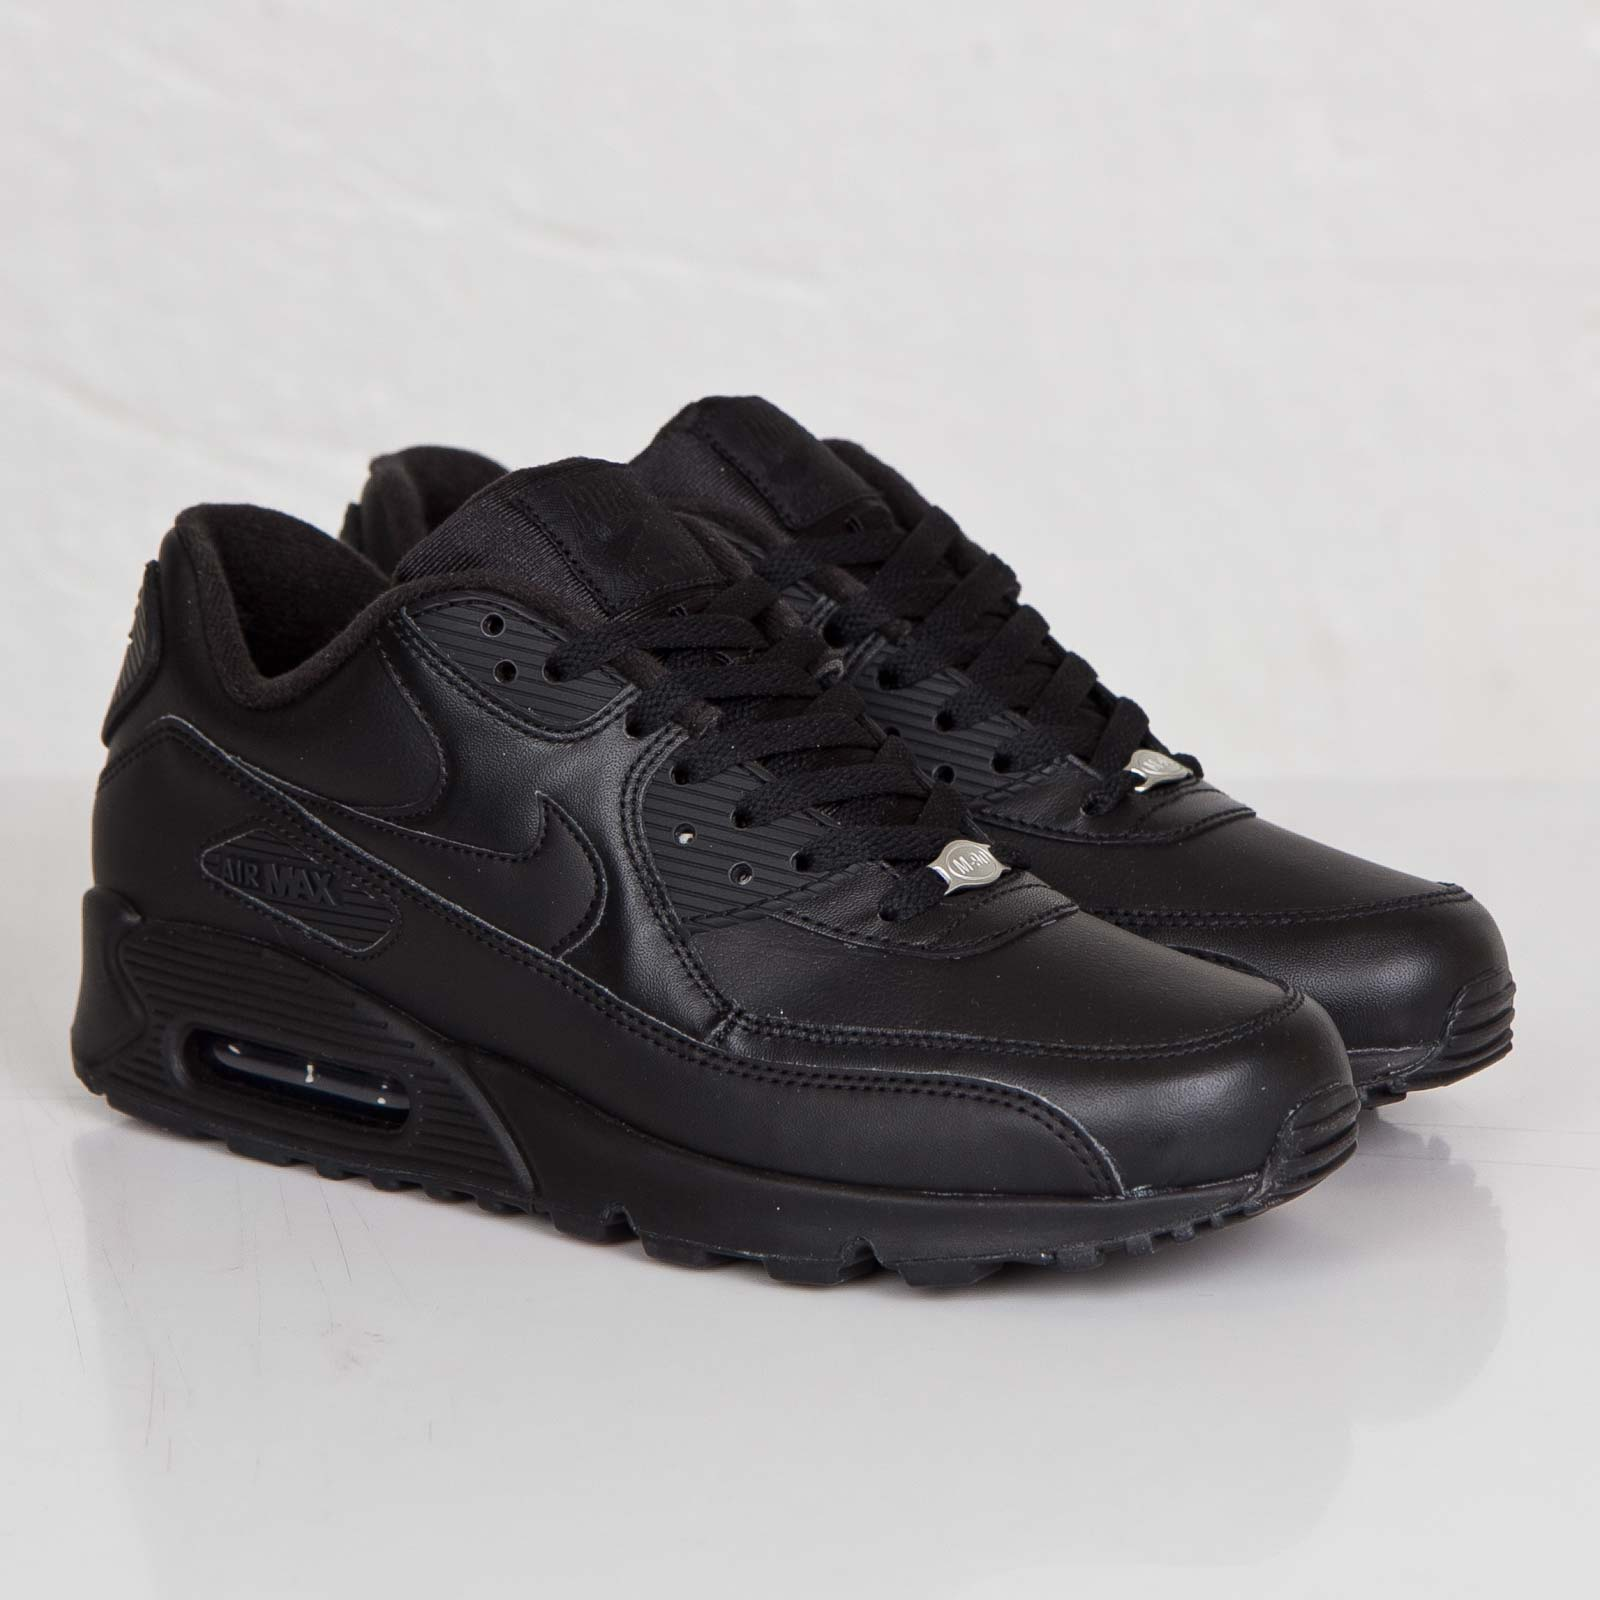 Nike Air Max 90 Leather 302519 001 Sneakersnstuff